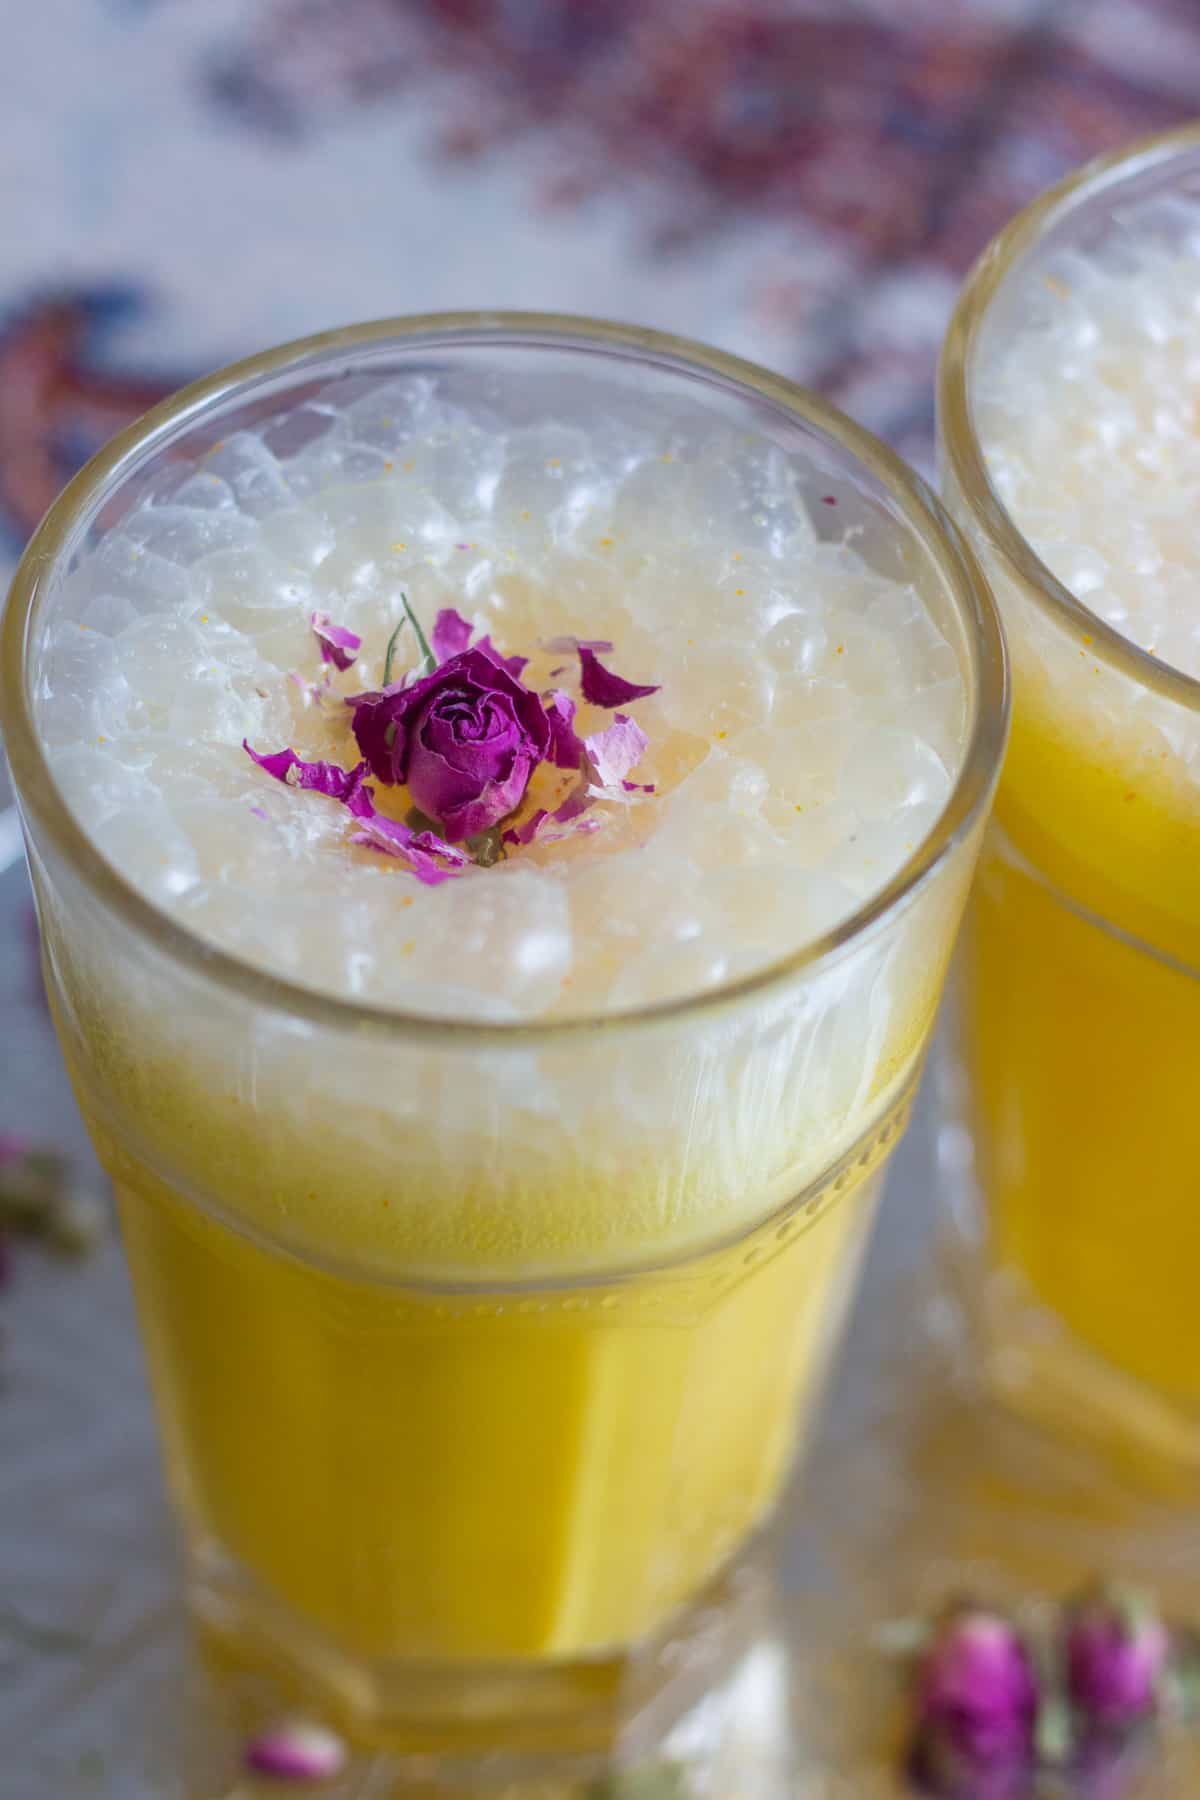 Saffron milkshake in 5 minutes! This is like nothing you've had before! It's so flavorful and easy to make. With flavors of saffron and cardamom, this milkshake is everyone's favorite. You can make it with non dairy ice cream and milk as well!